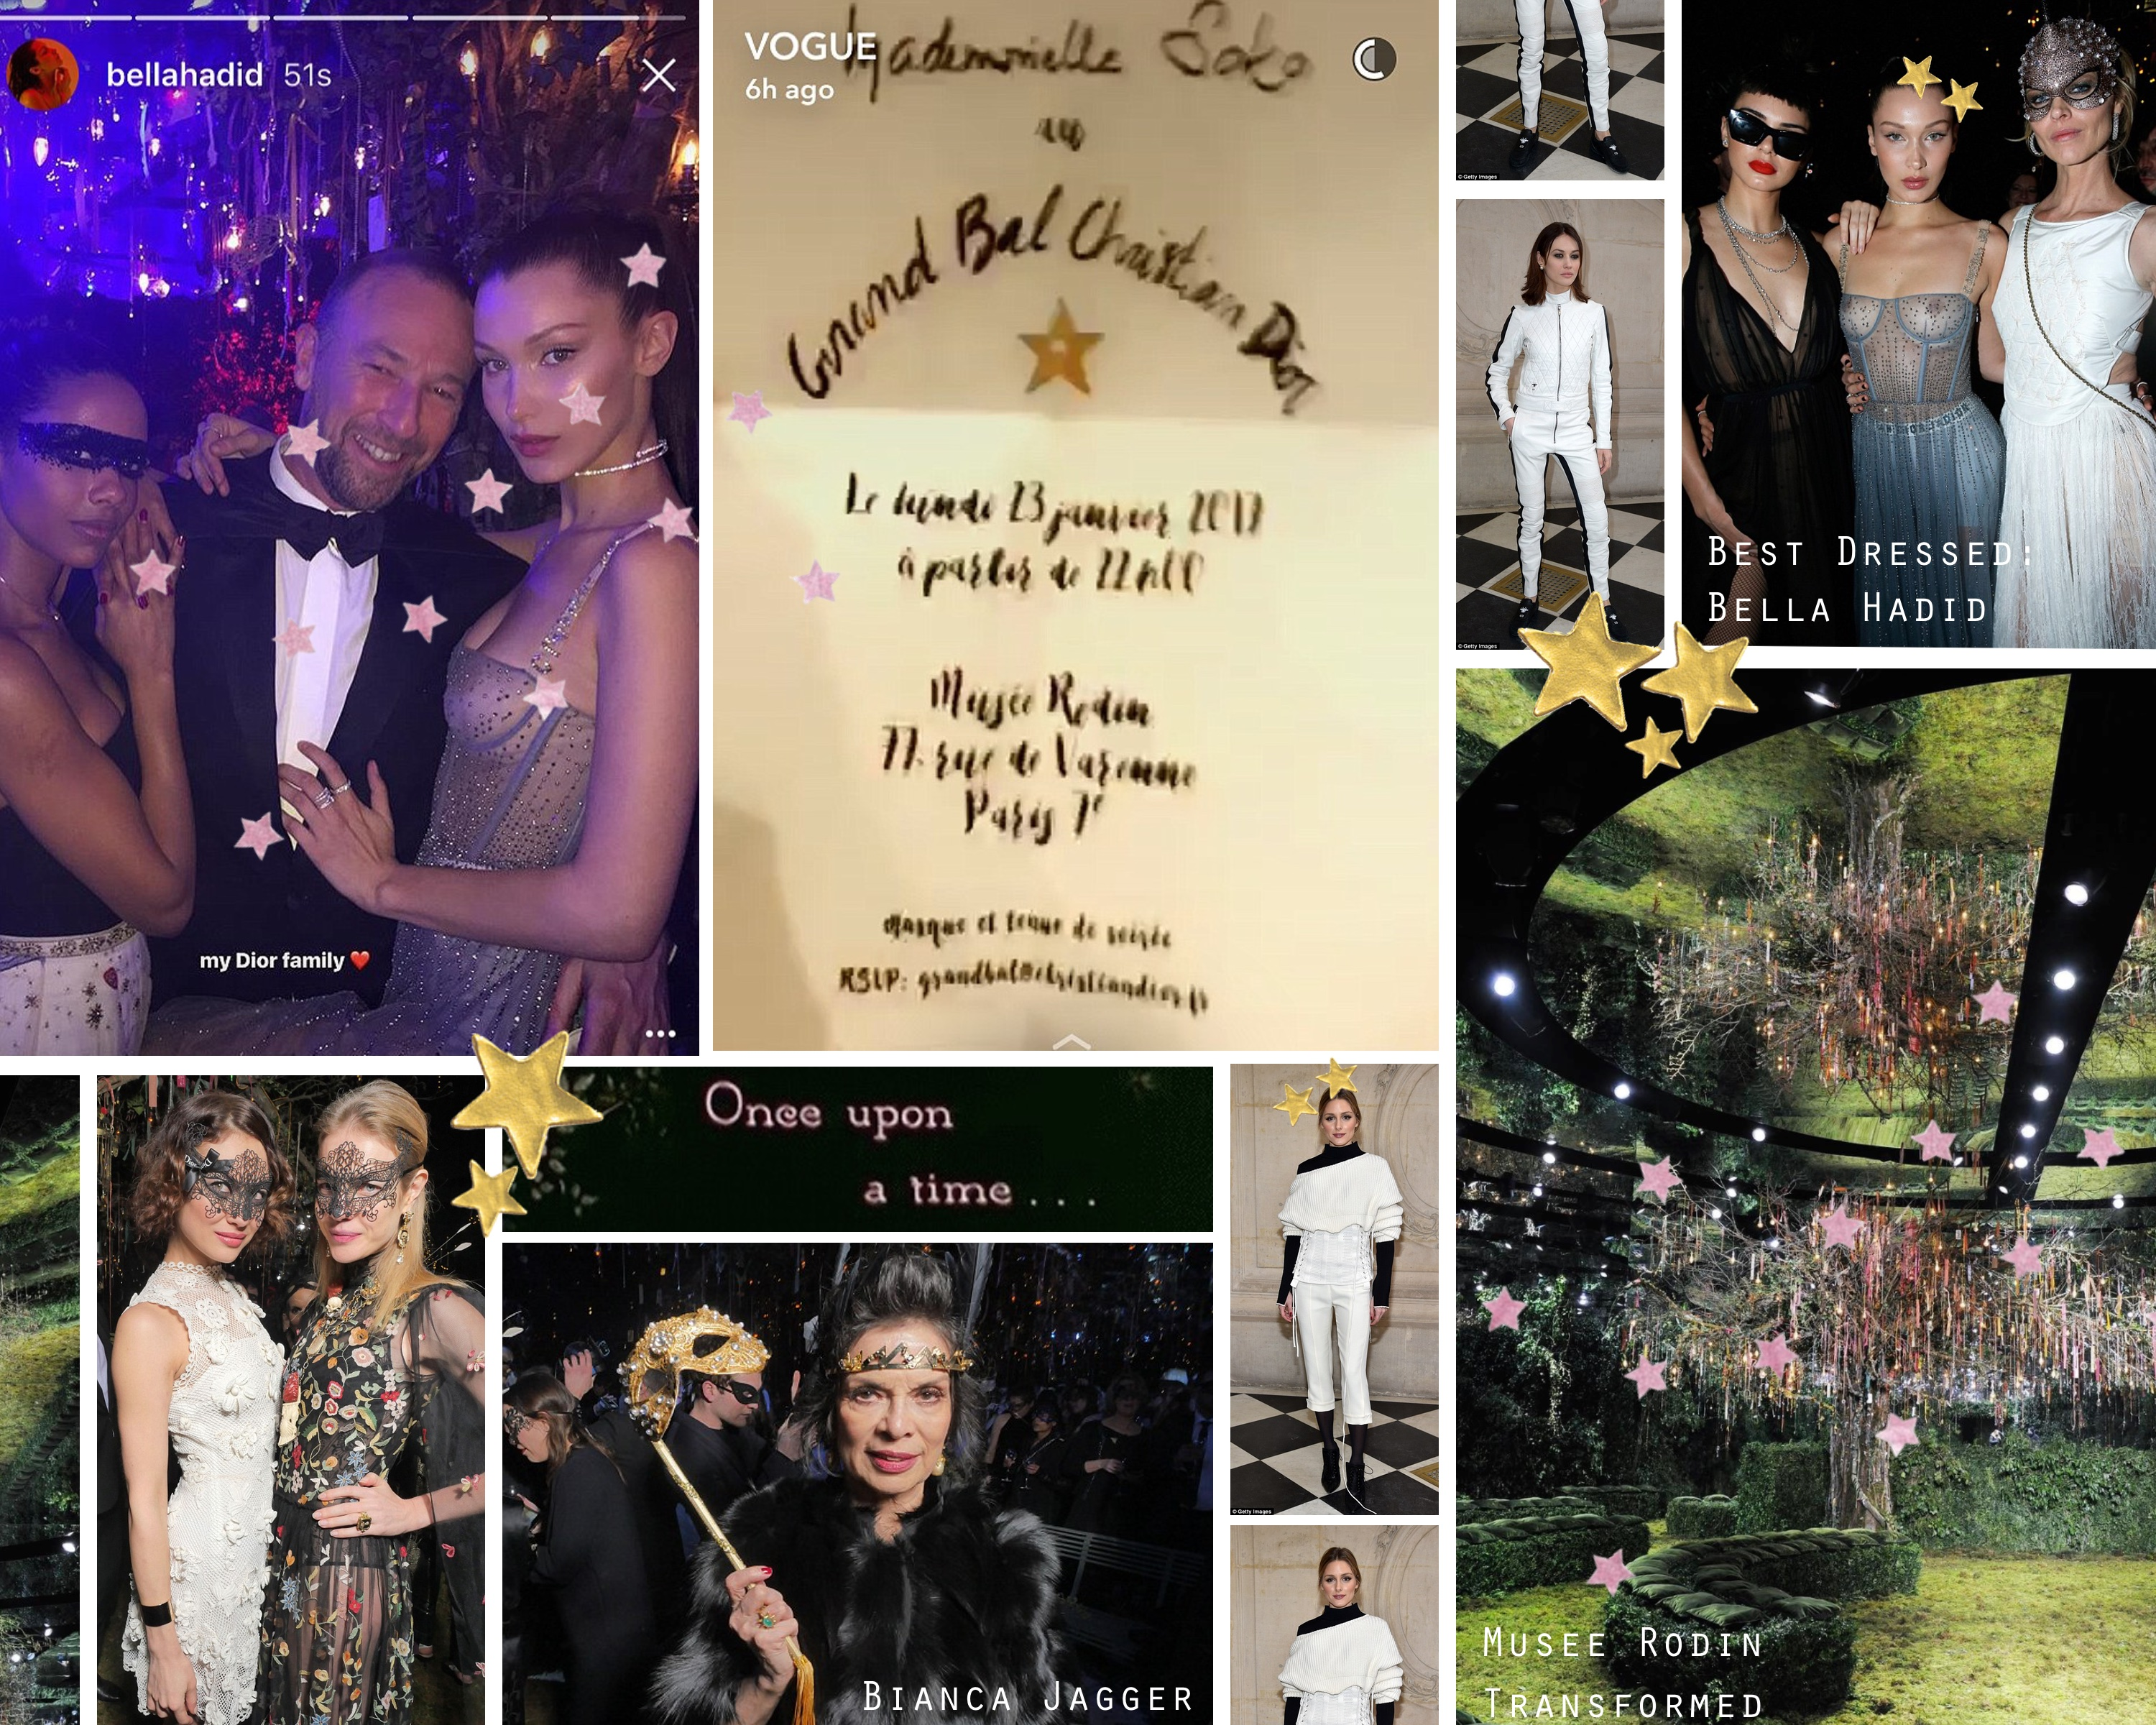 The Dior Ball   Your Invite Get Lost Too? // The Dior Ball 2017 Spring Couture by Christian Dior Runway Show // Los Angeles Fashion Blogger Daphne Blunt: To Style, With Love